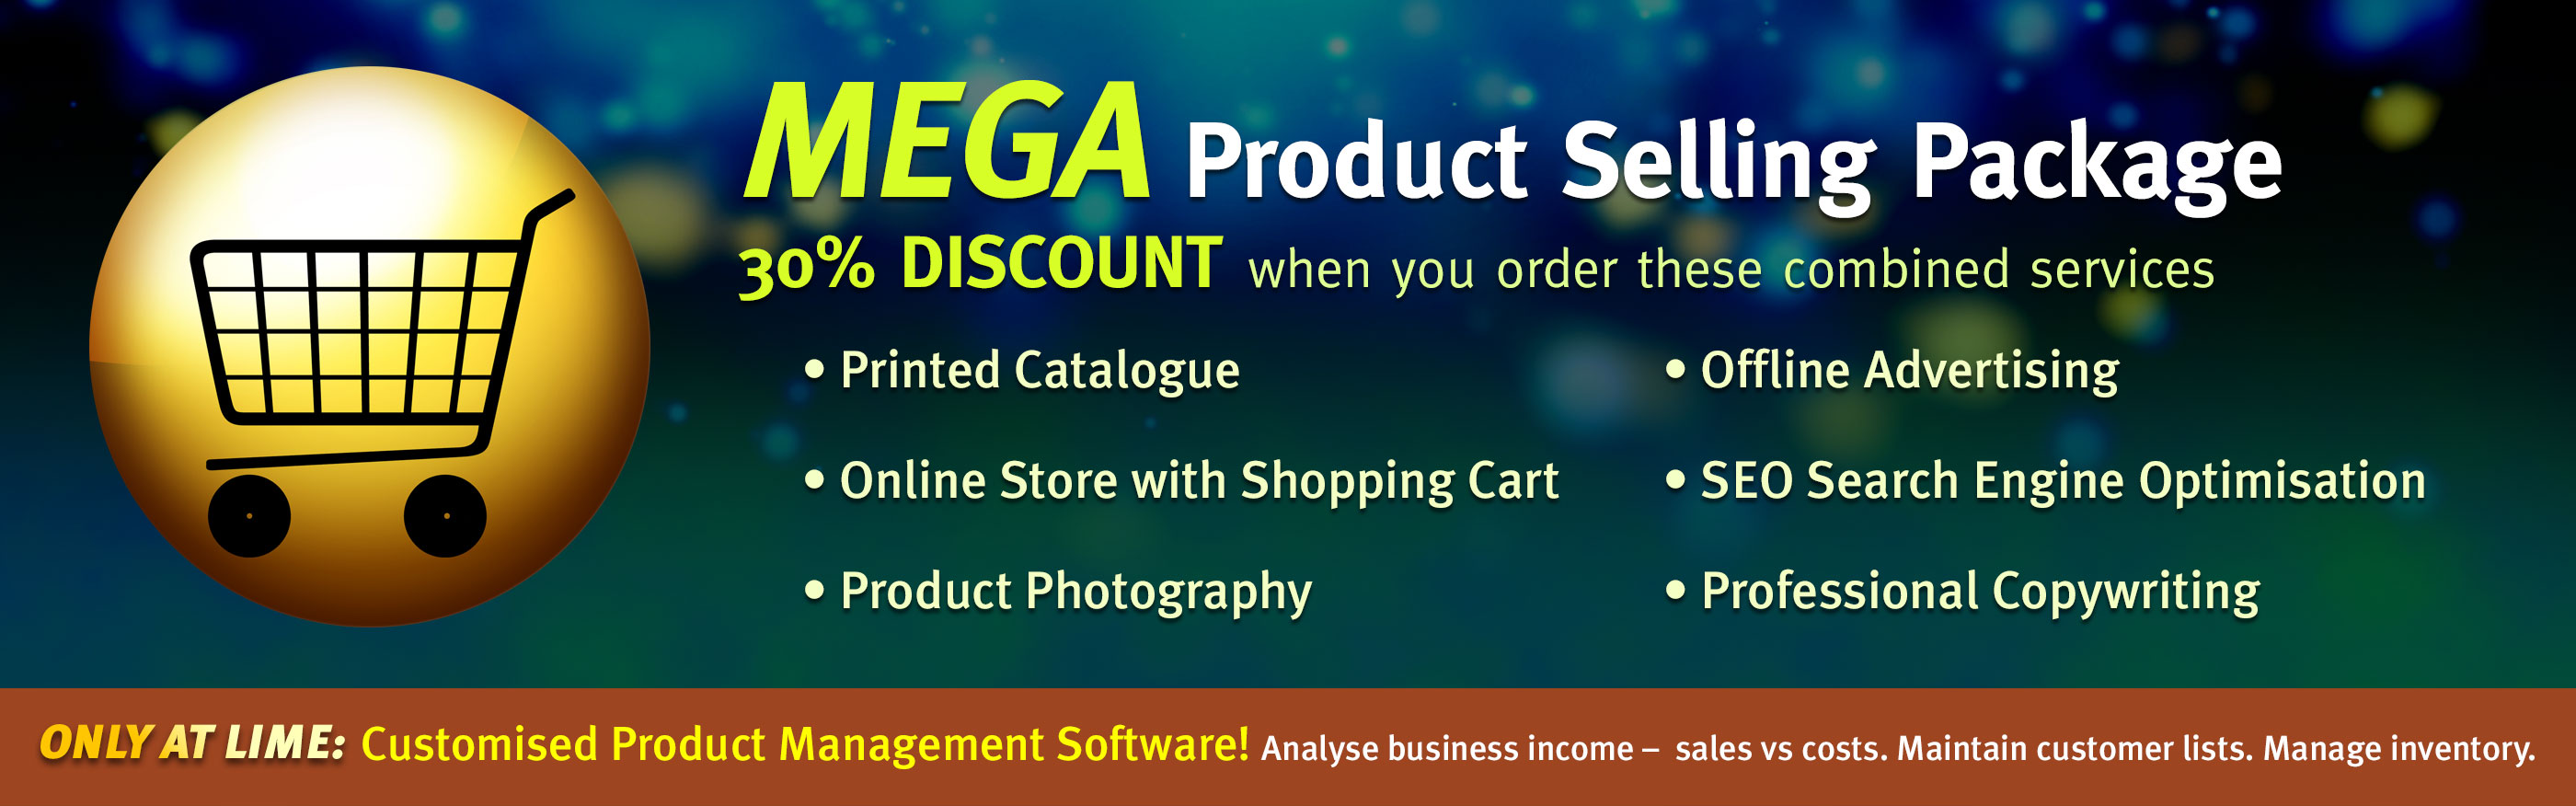 Catalogue Mega Ecommerce Bundle